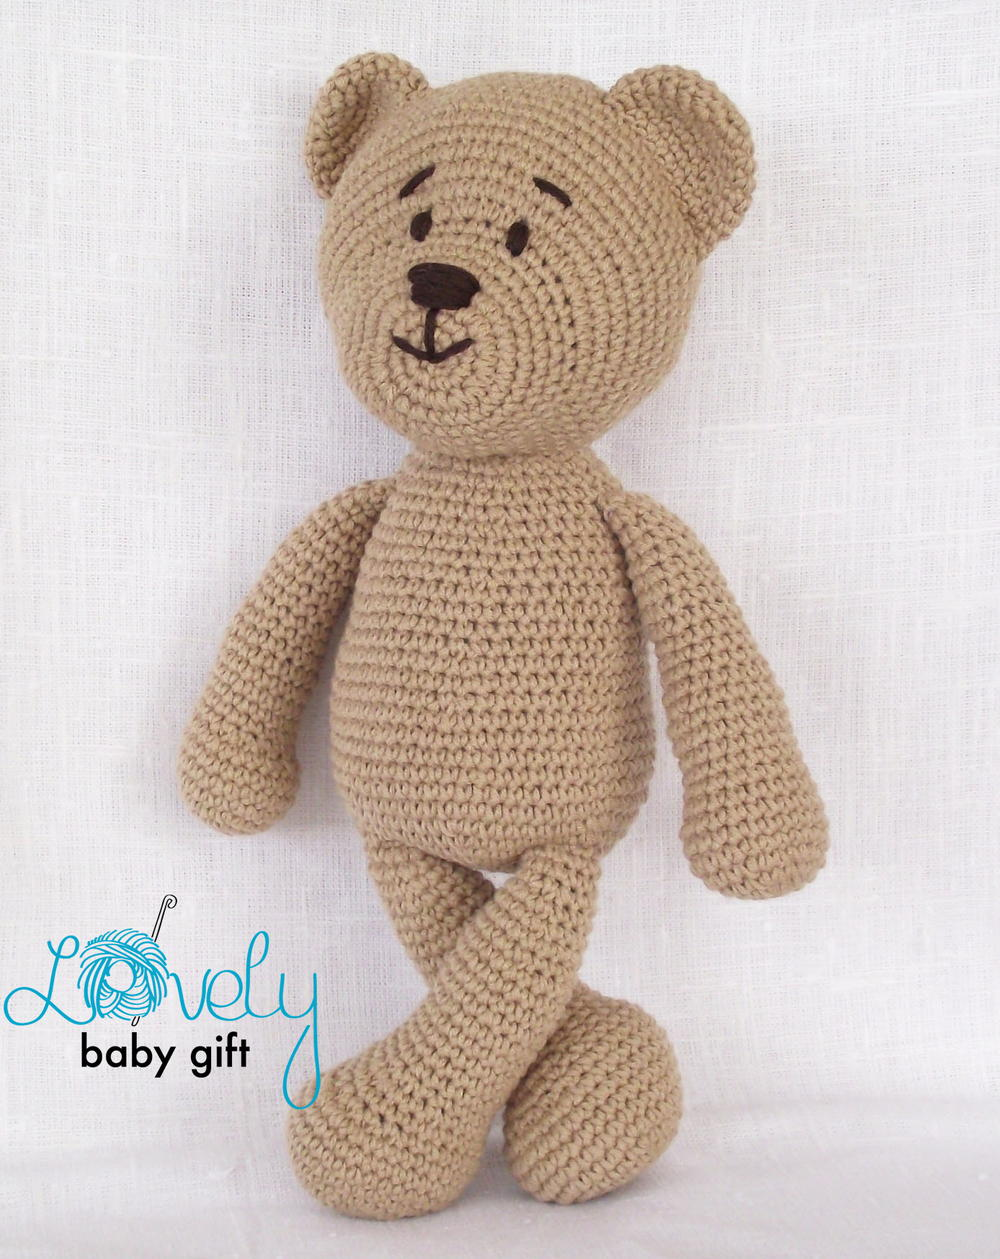 FREE Crochet Pattern for a Cute Teddy Bear | Crochet teddy bear ... | 1259x1000